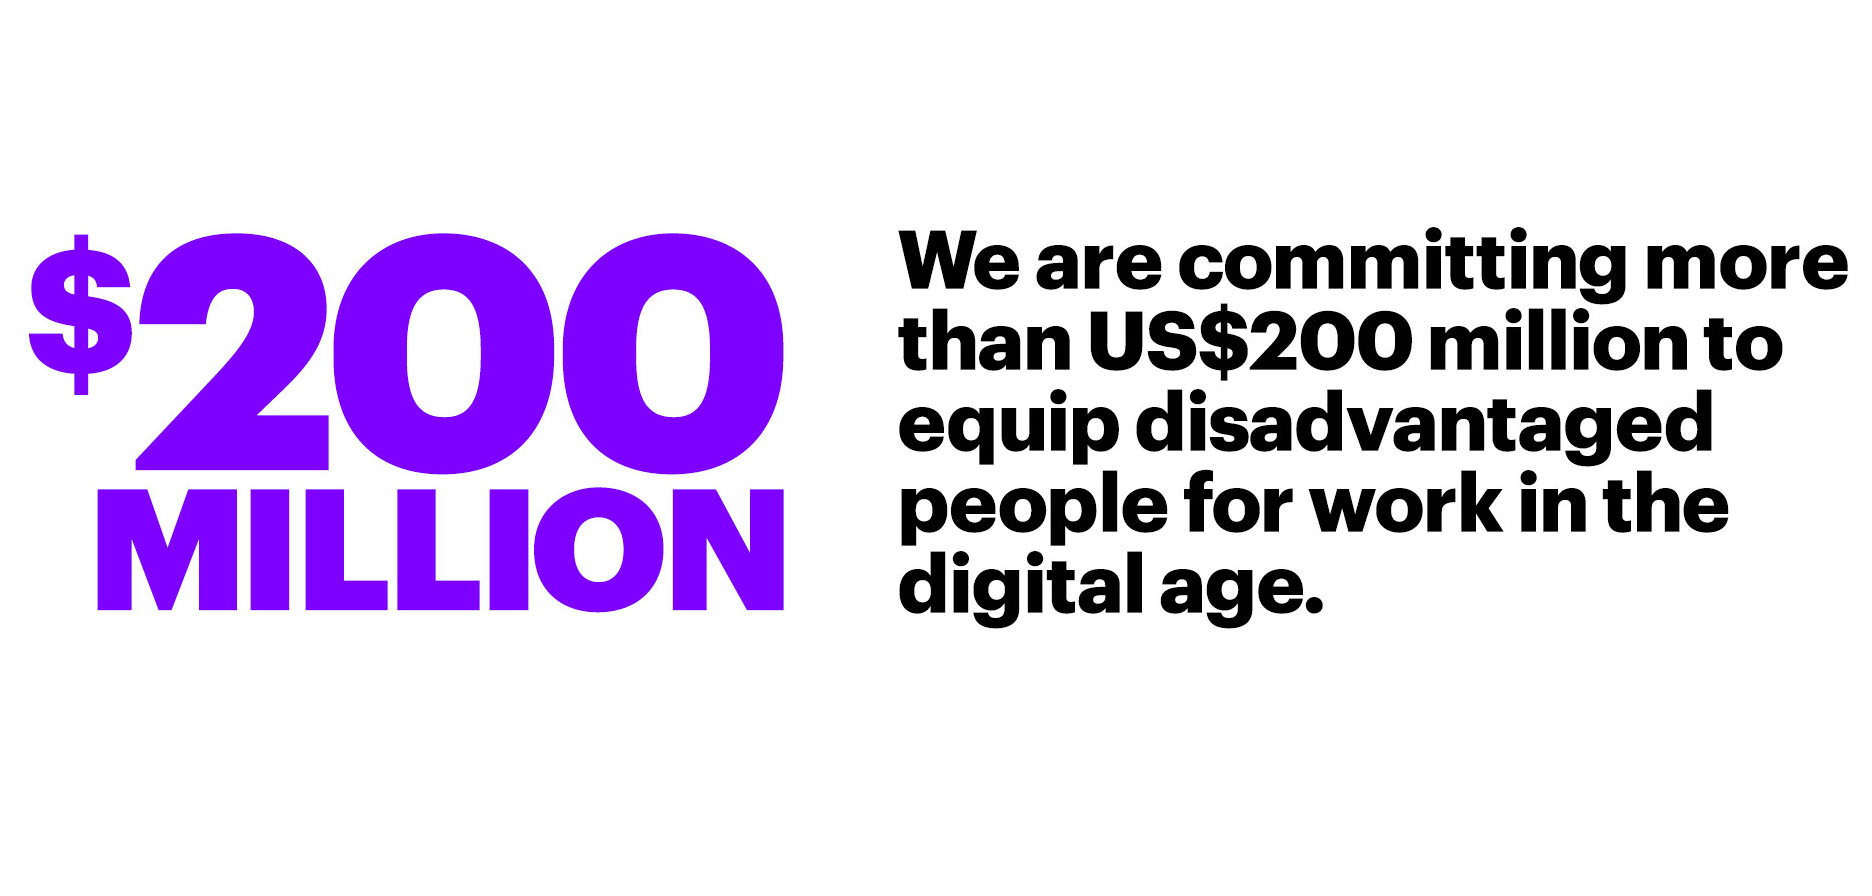 Accenture Commits US$200 Million to Education, Training and Skills Initiatives Over Next Three Years to Equip Disadvantaged People for Work in the Digital Age